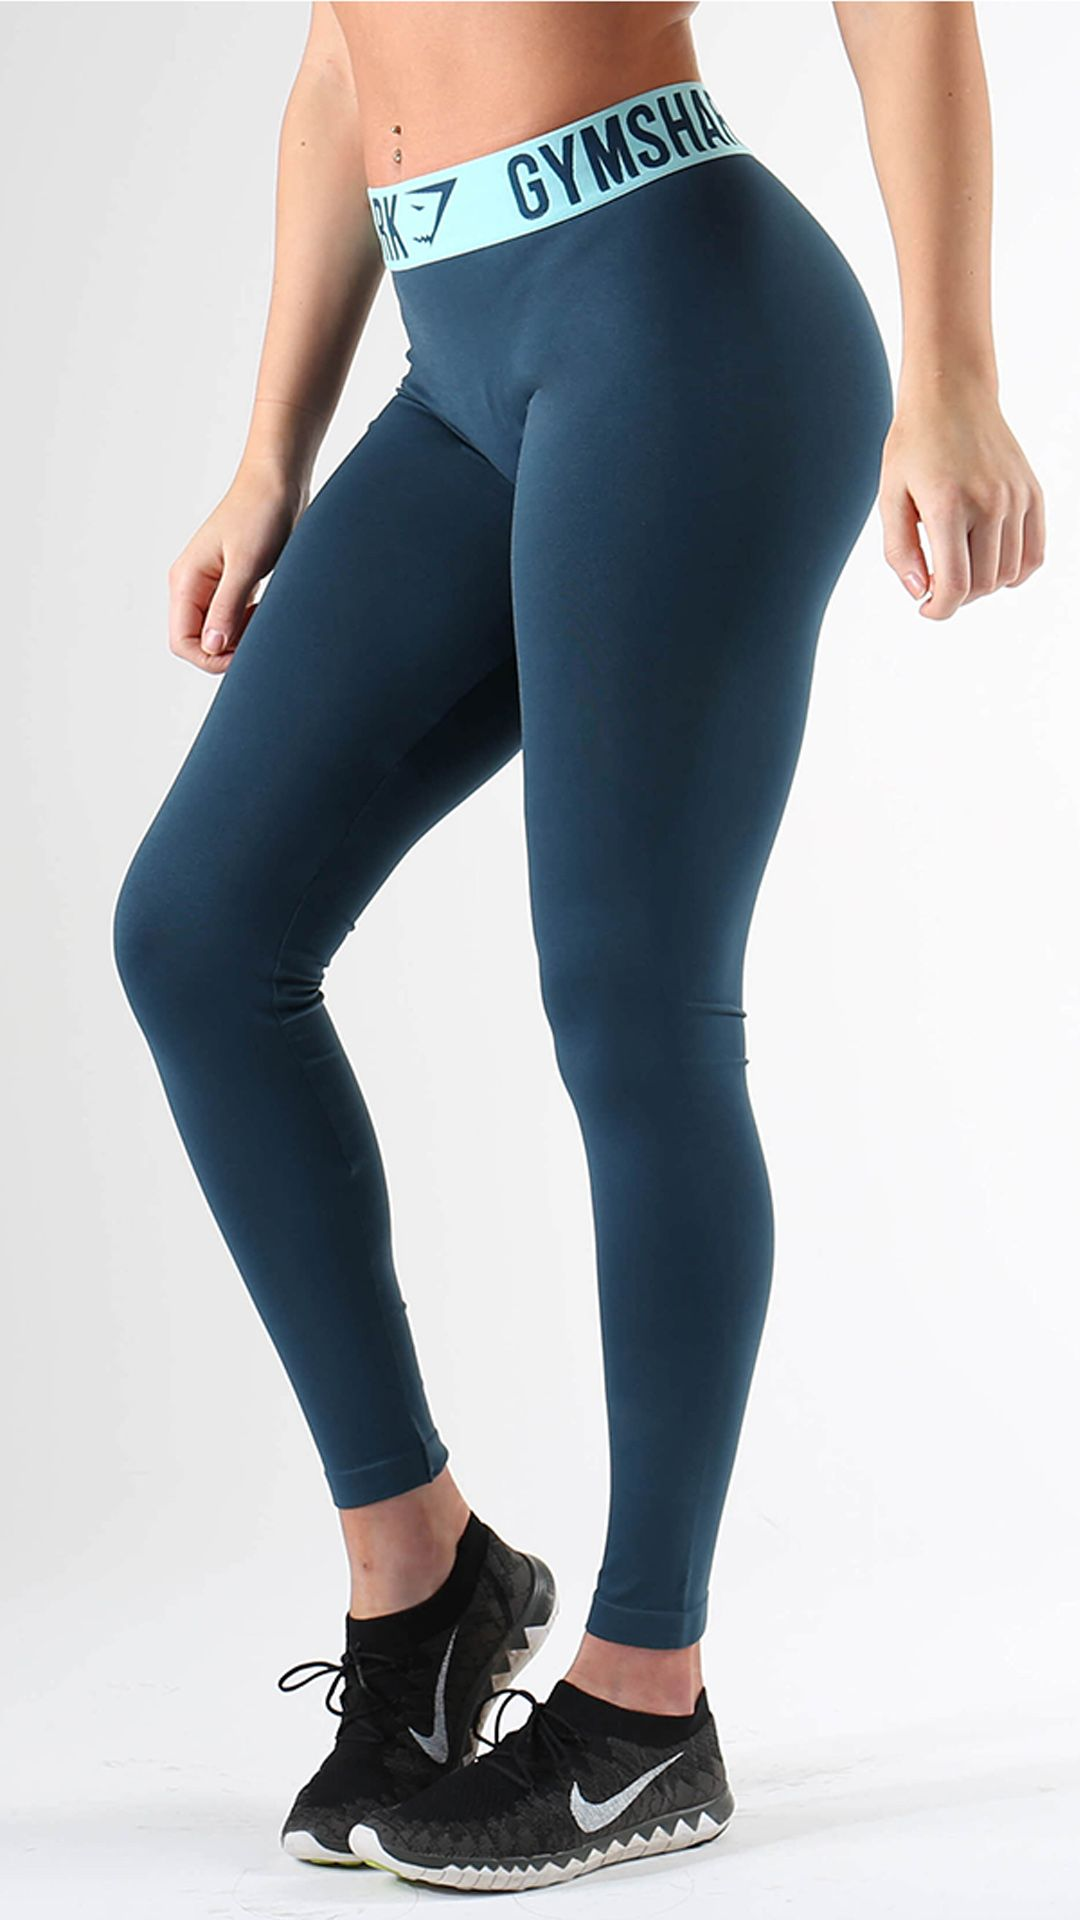 1eddfa3be7ea6 Fit Leggings in Lagoon Blue are form hugging and figure flattering workout  leggings with the famous Gymshark performance waistband